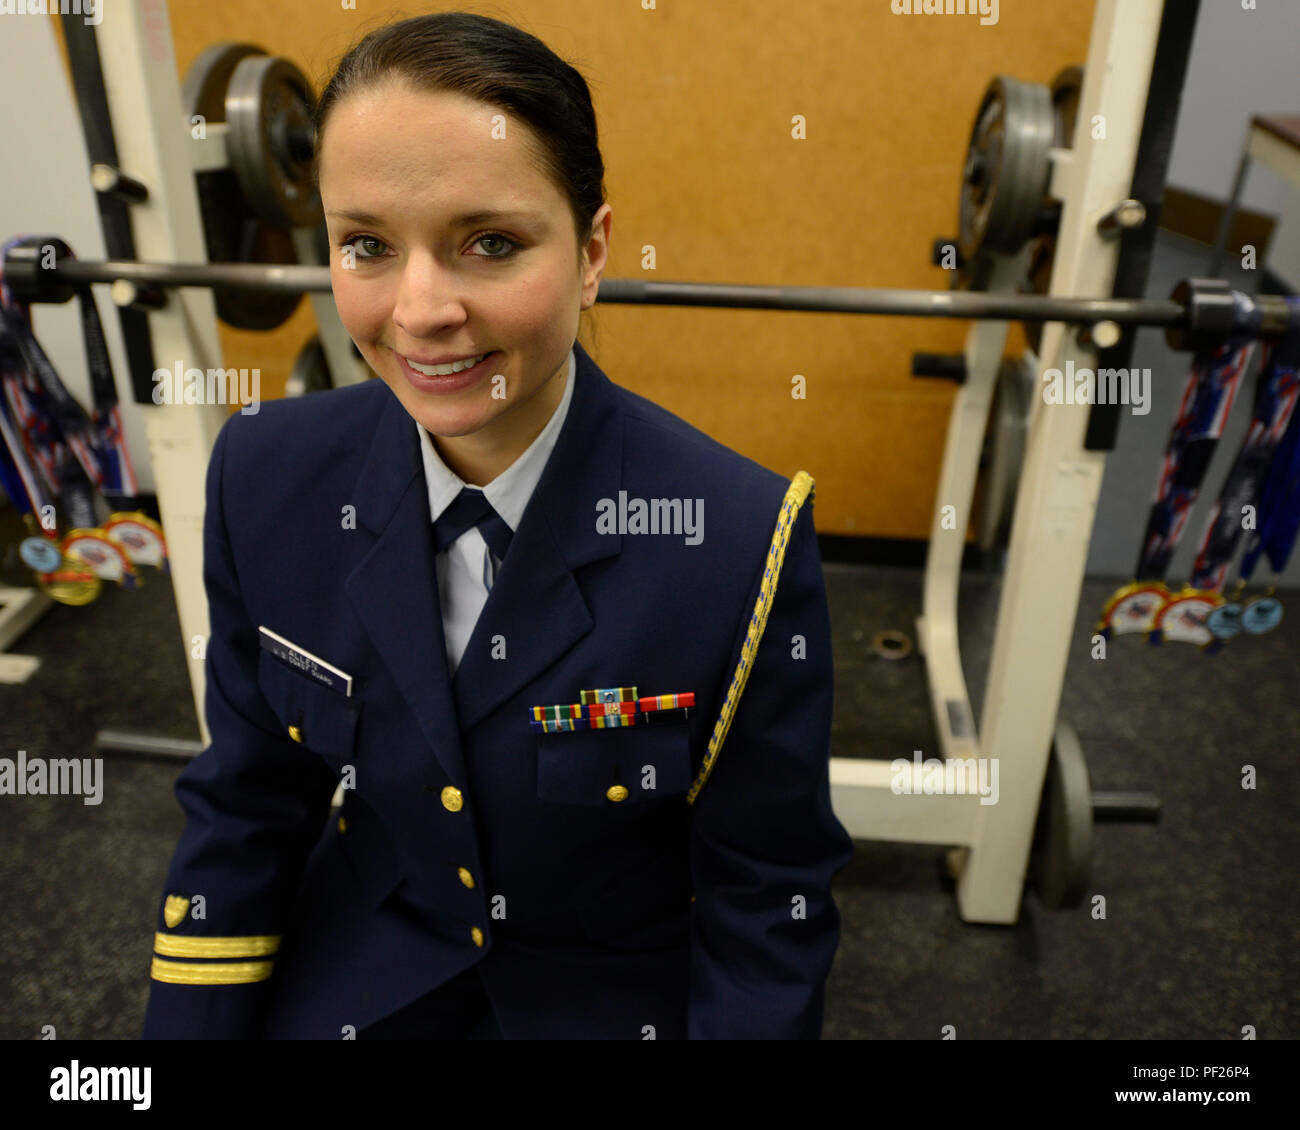 "Lt. Nyrel Allen, Coast Guard 13th District flag aide and Coast Guard elite female athlete of the year, sits with her powerlifting medals in the gym at the 13th district headquarters in Seattle, Dec. 15, 2015. Allen is also a Lead Facilitator for an anti-bullying workshop titled ""Power up,"" focused on helping young women from third to 12th grade understand the negative impacts of bullying. (U.S. Coast Guard photo by Petty Officer 3rd Class Amanda Norcross) - Stock Image"